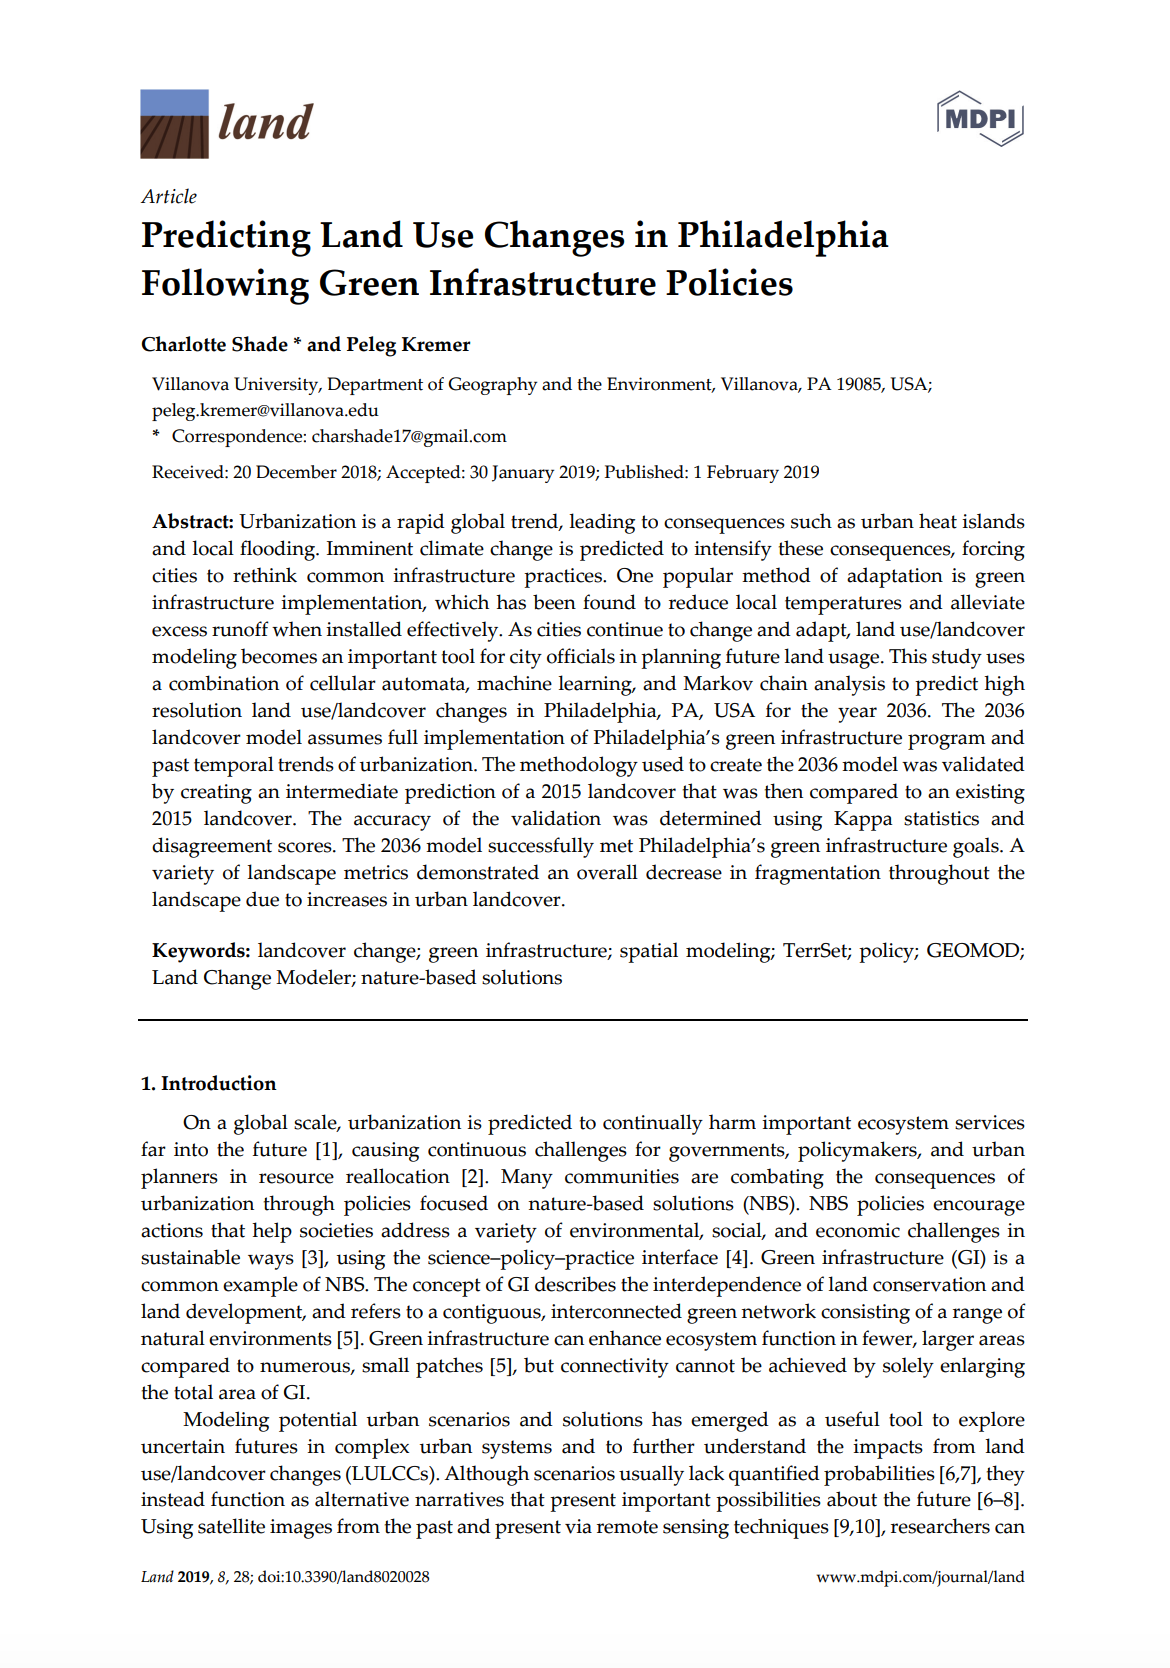 Predicting Land Use Changes in Philadelphia Following Green Infrastructure Policies cover image